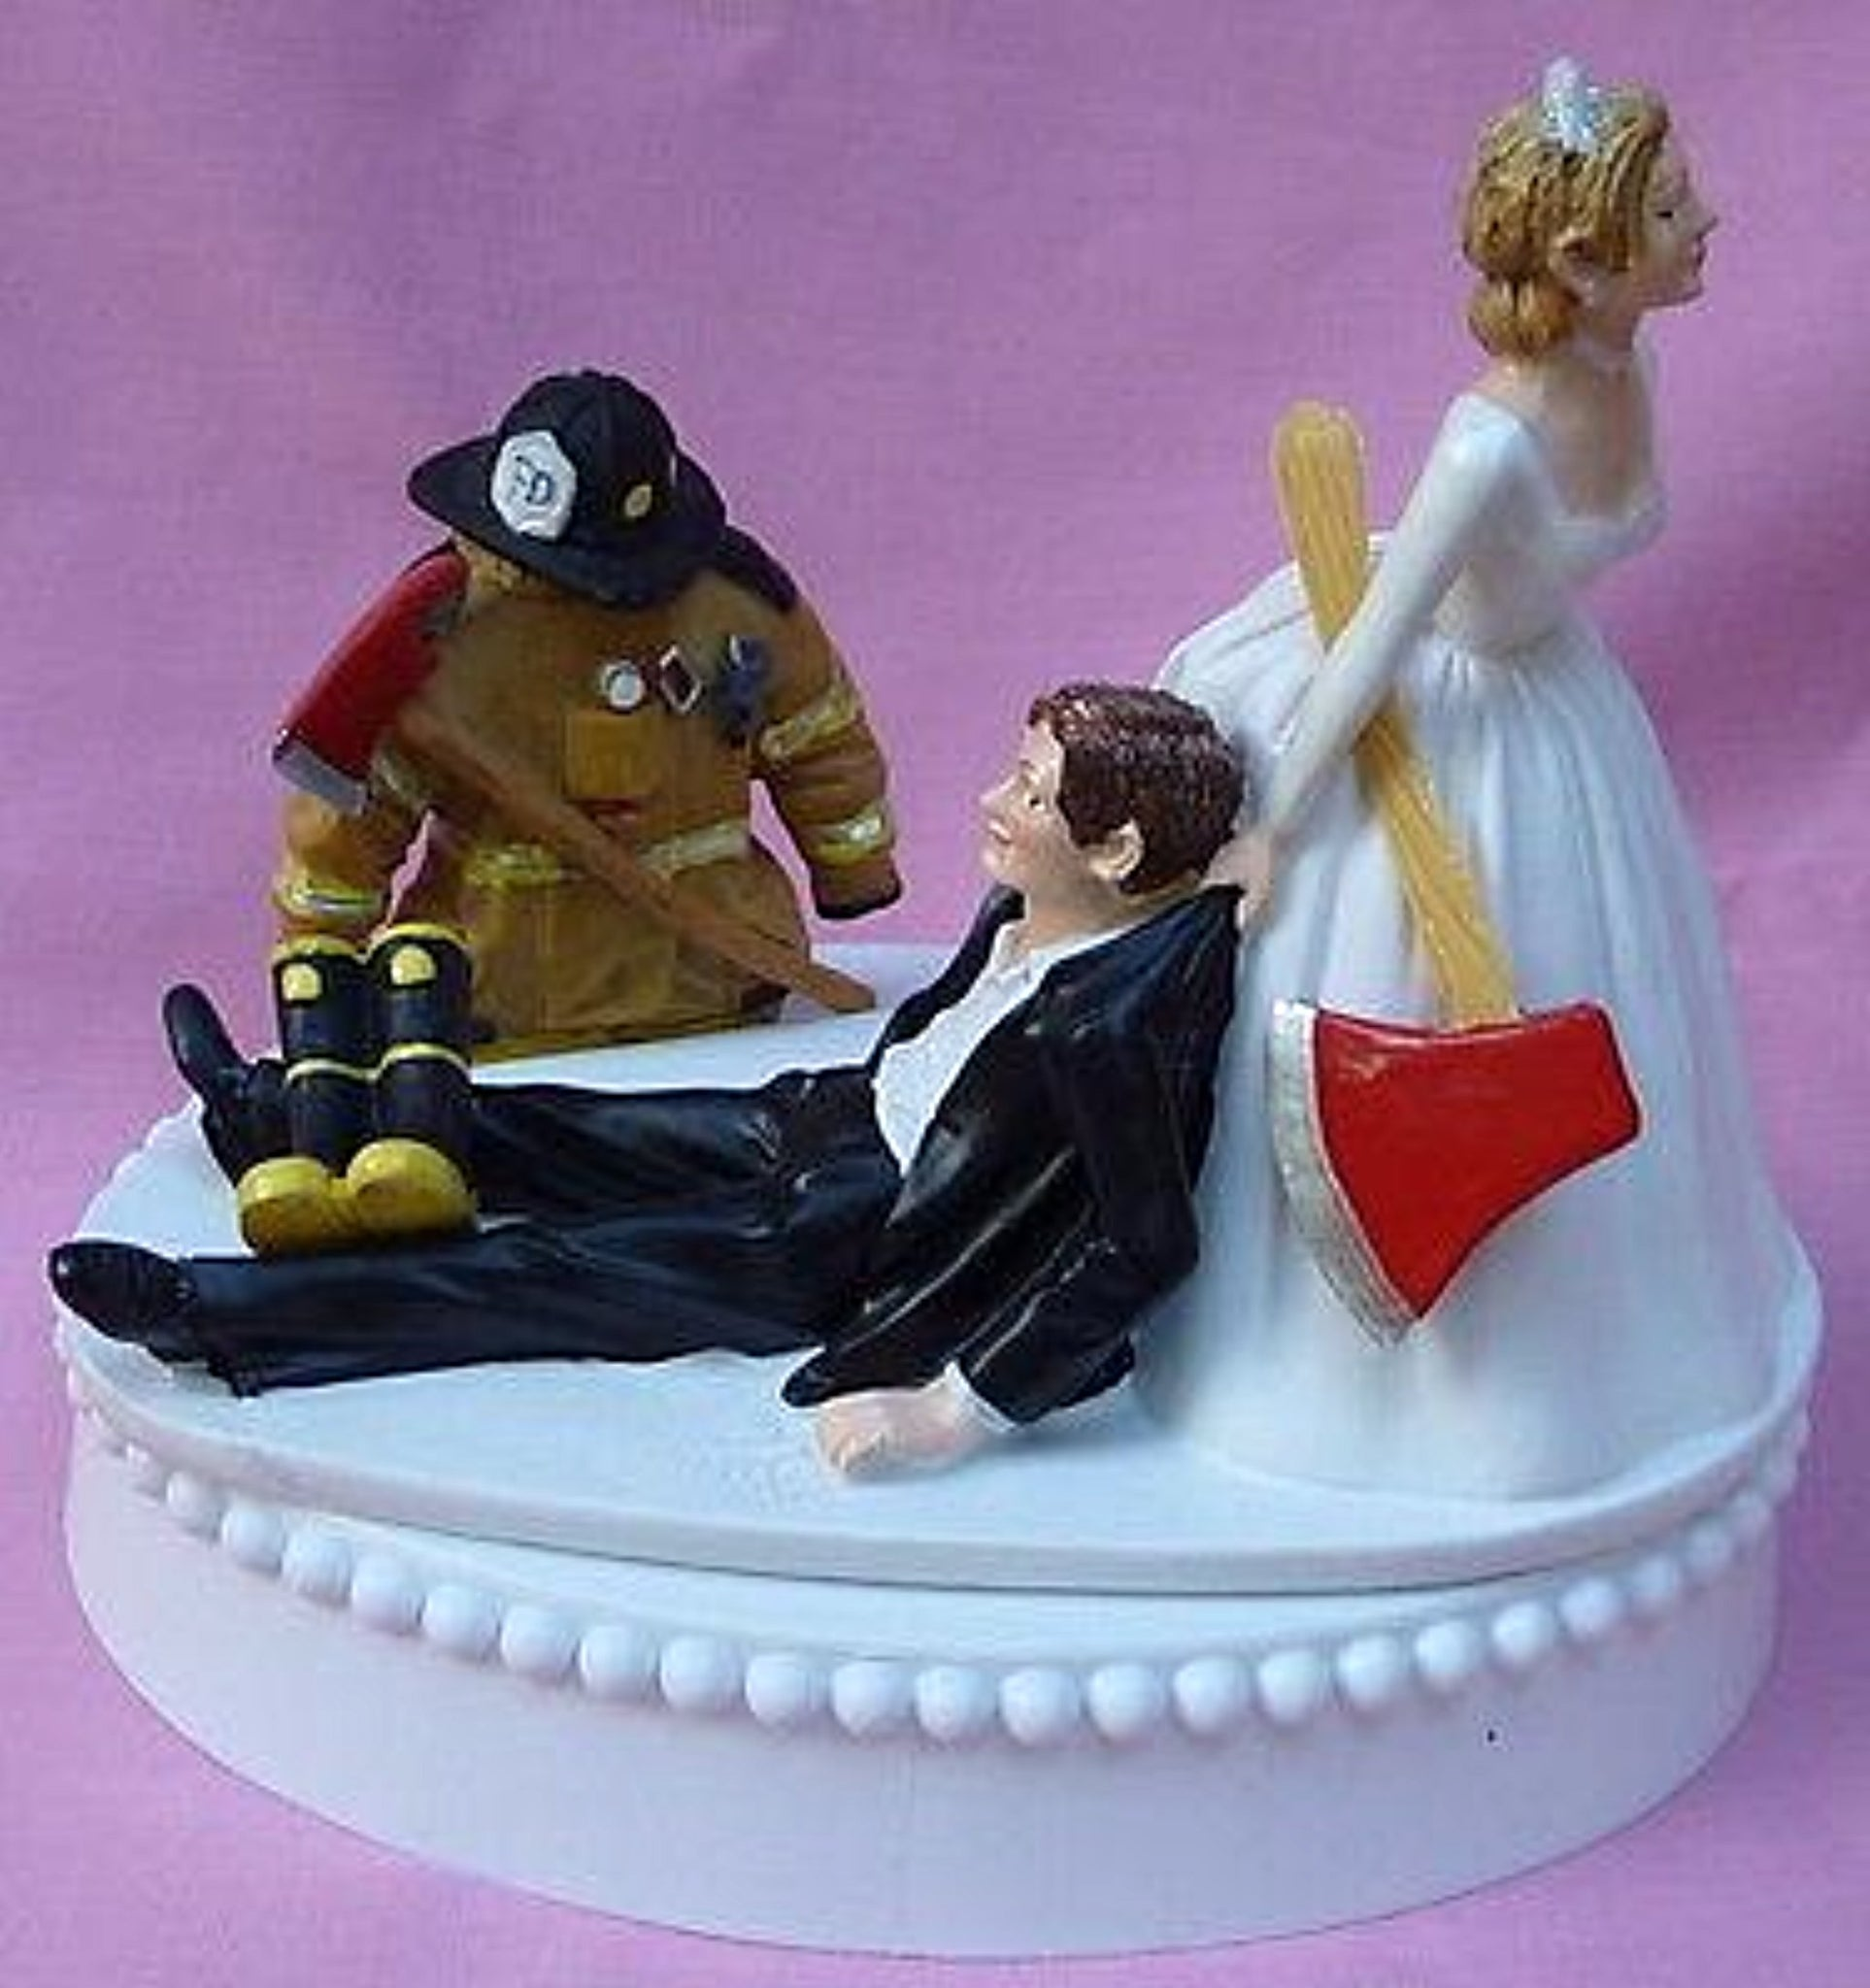 Fireman wedding cake topper firefighter bride groom's cake top humorous dragging away boots axe uniform helmet fire Fun Wedding Things